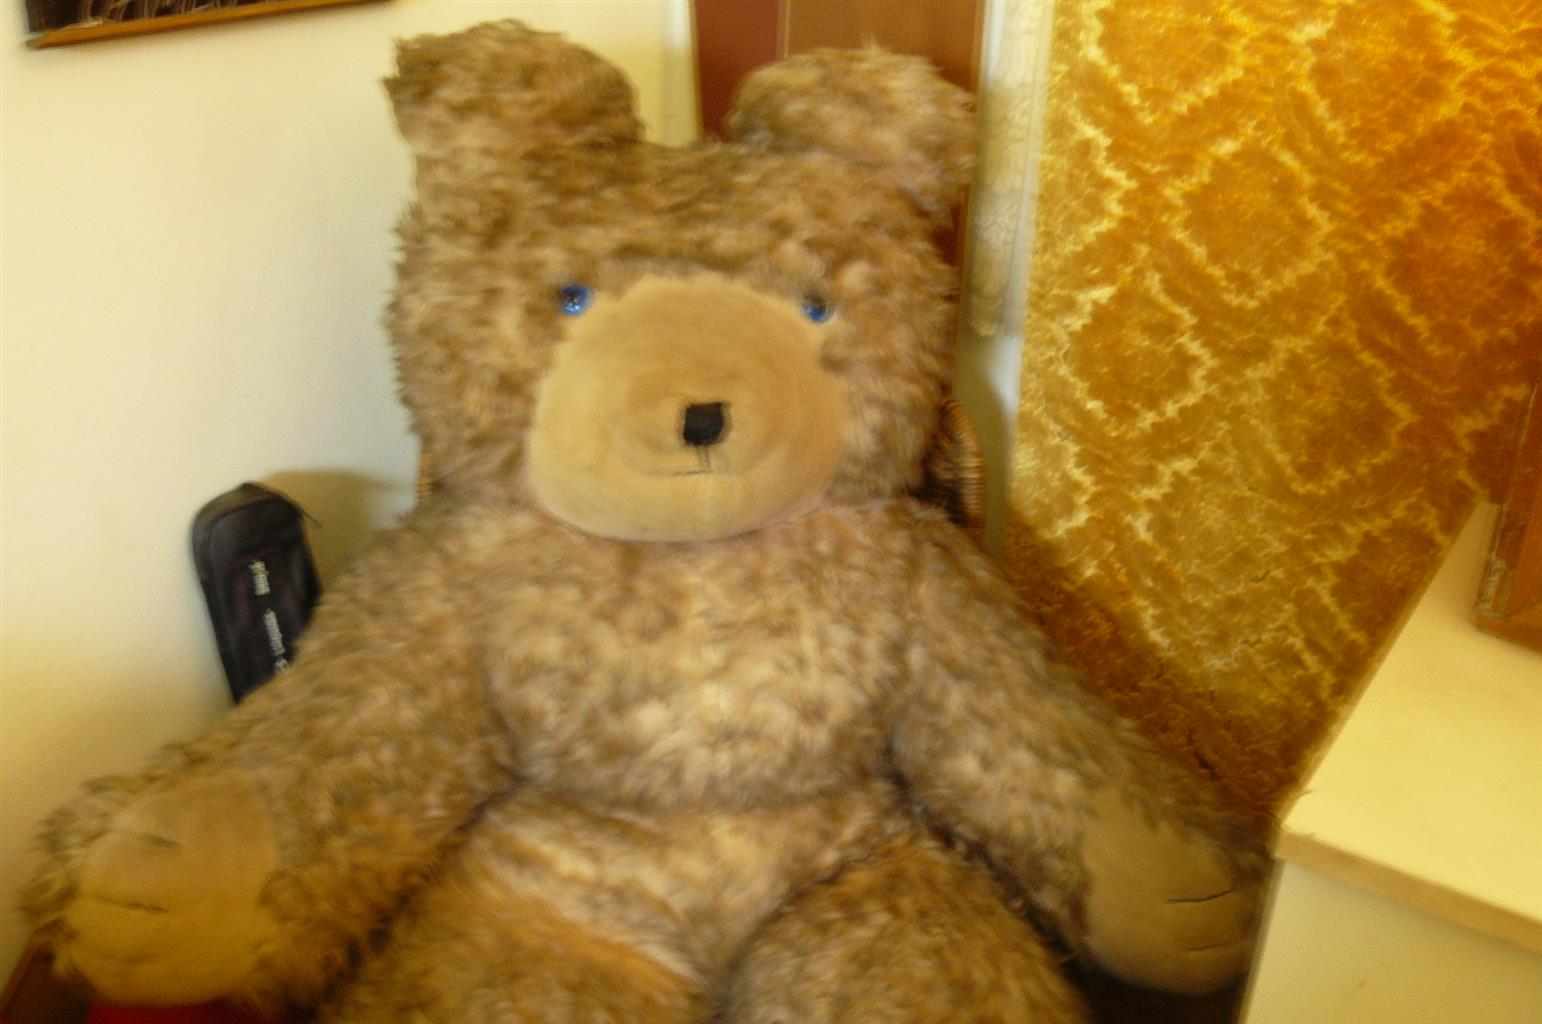 BIG ANTIQUE  TEDDY BEAR IN GOOD CONDITION FOR SALE !! Price reduced.